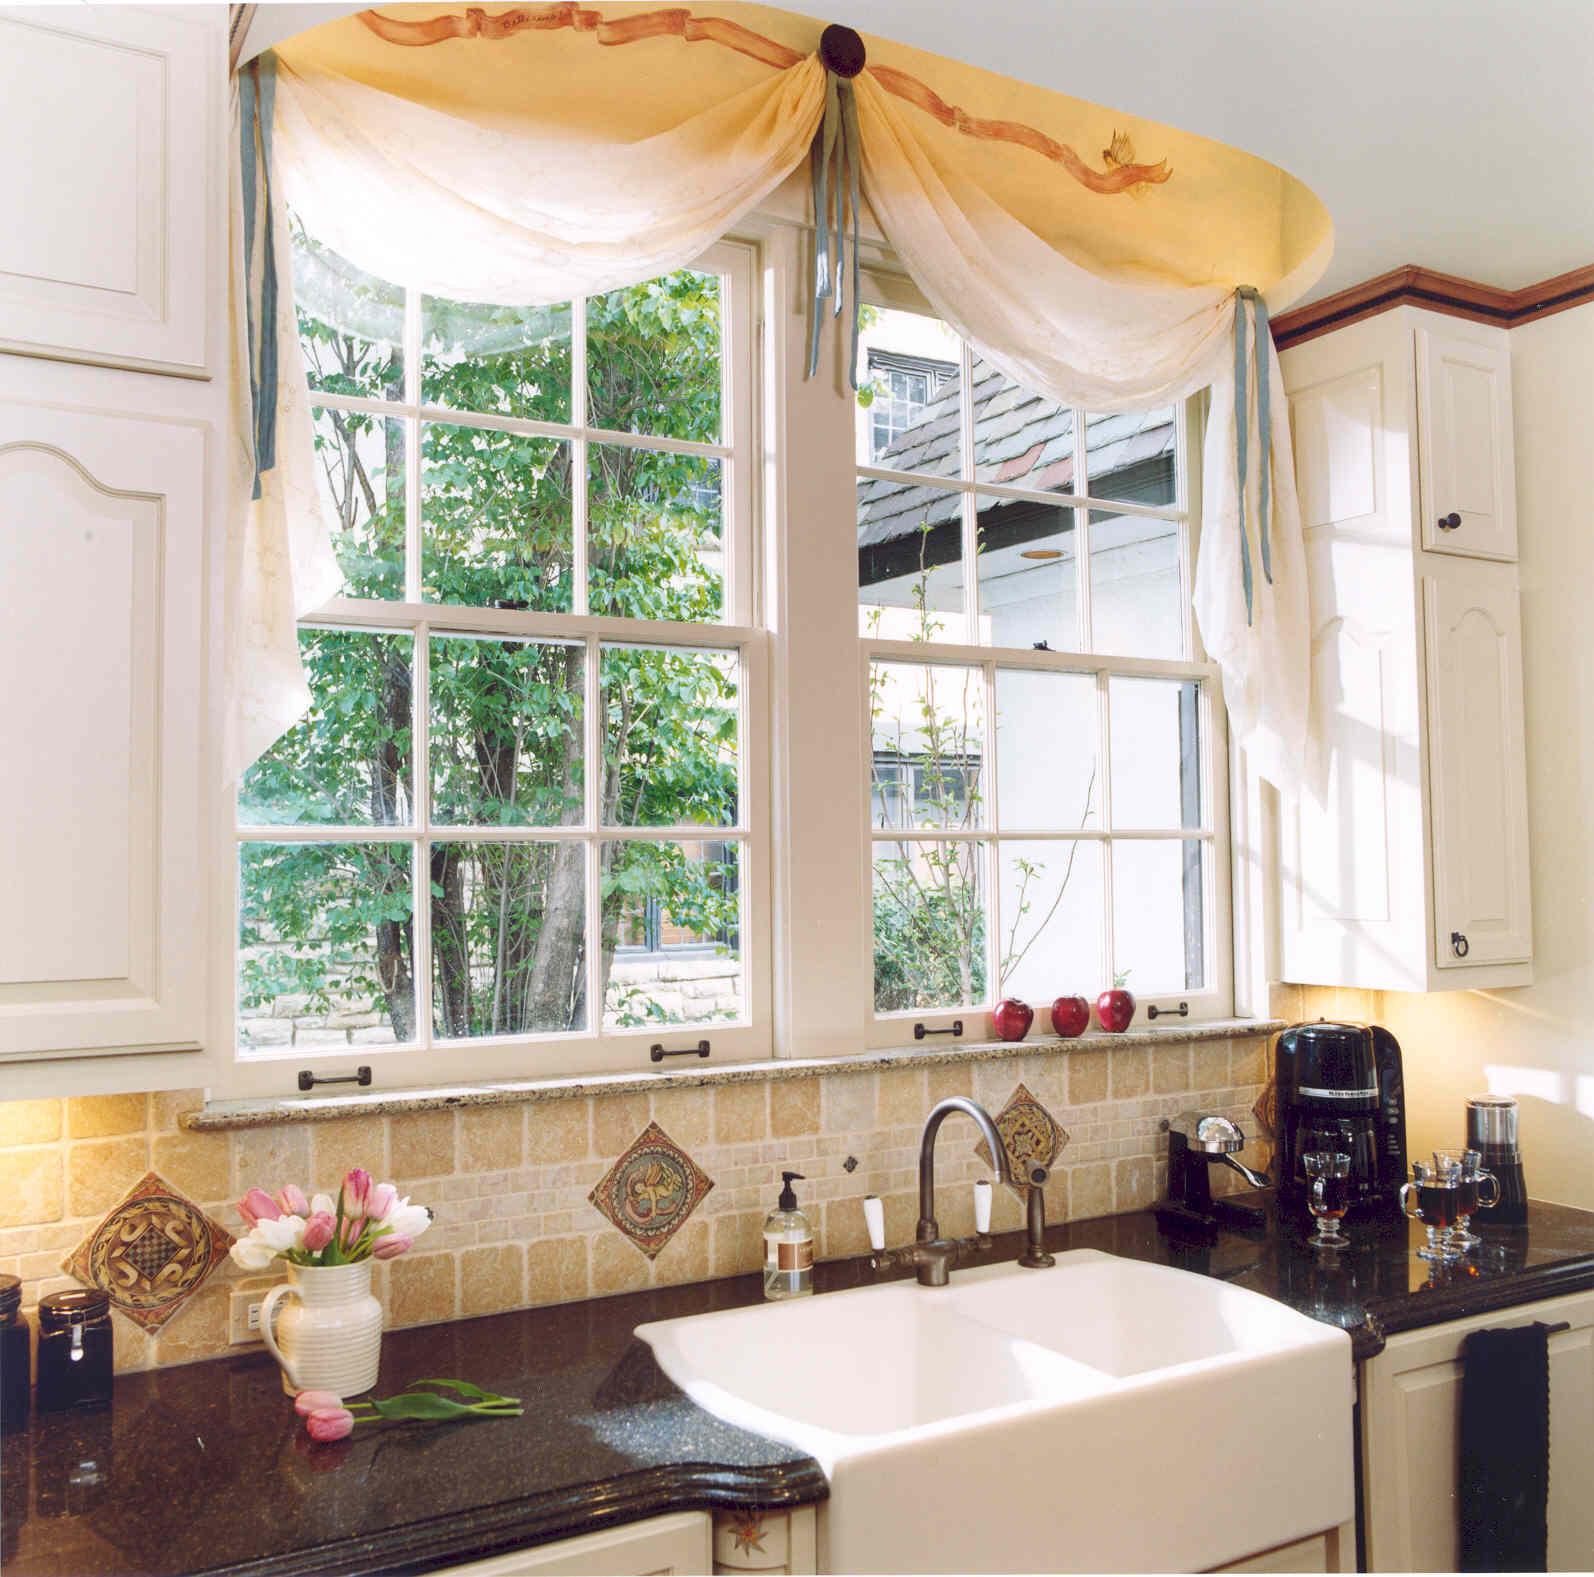 Spannende Fensterdeko Gardinen Ideen Erlene Window Treatments Window Treatment For Kitchen Window Over Sink Kitchen